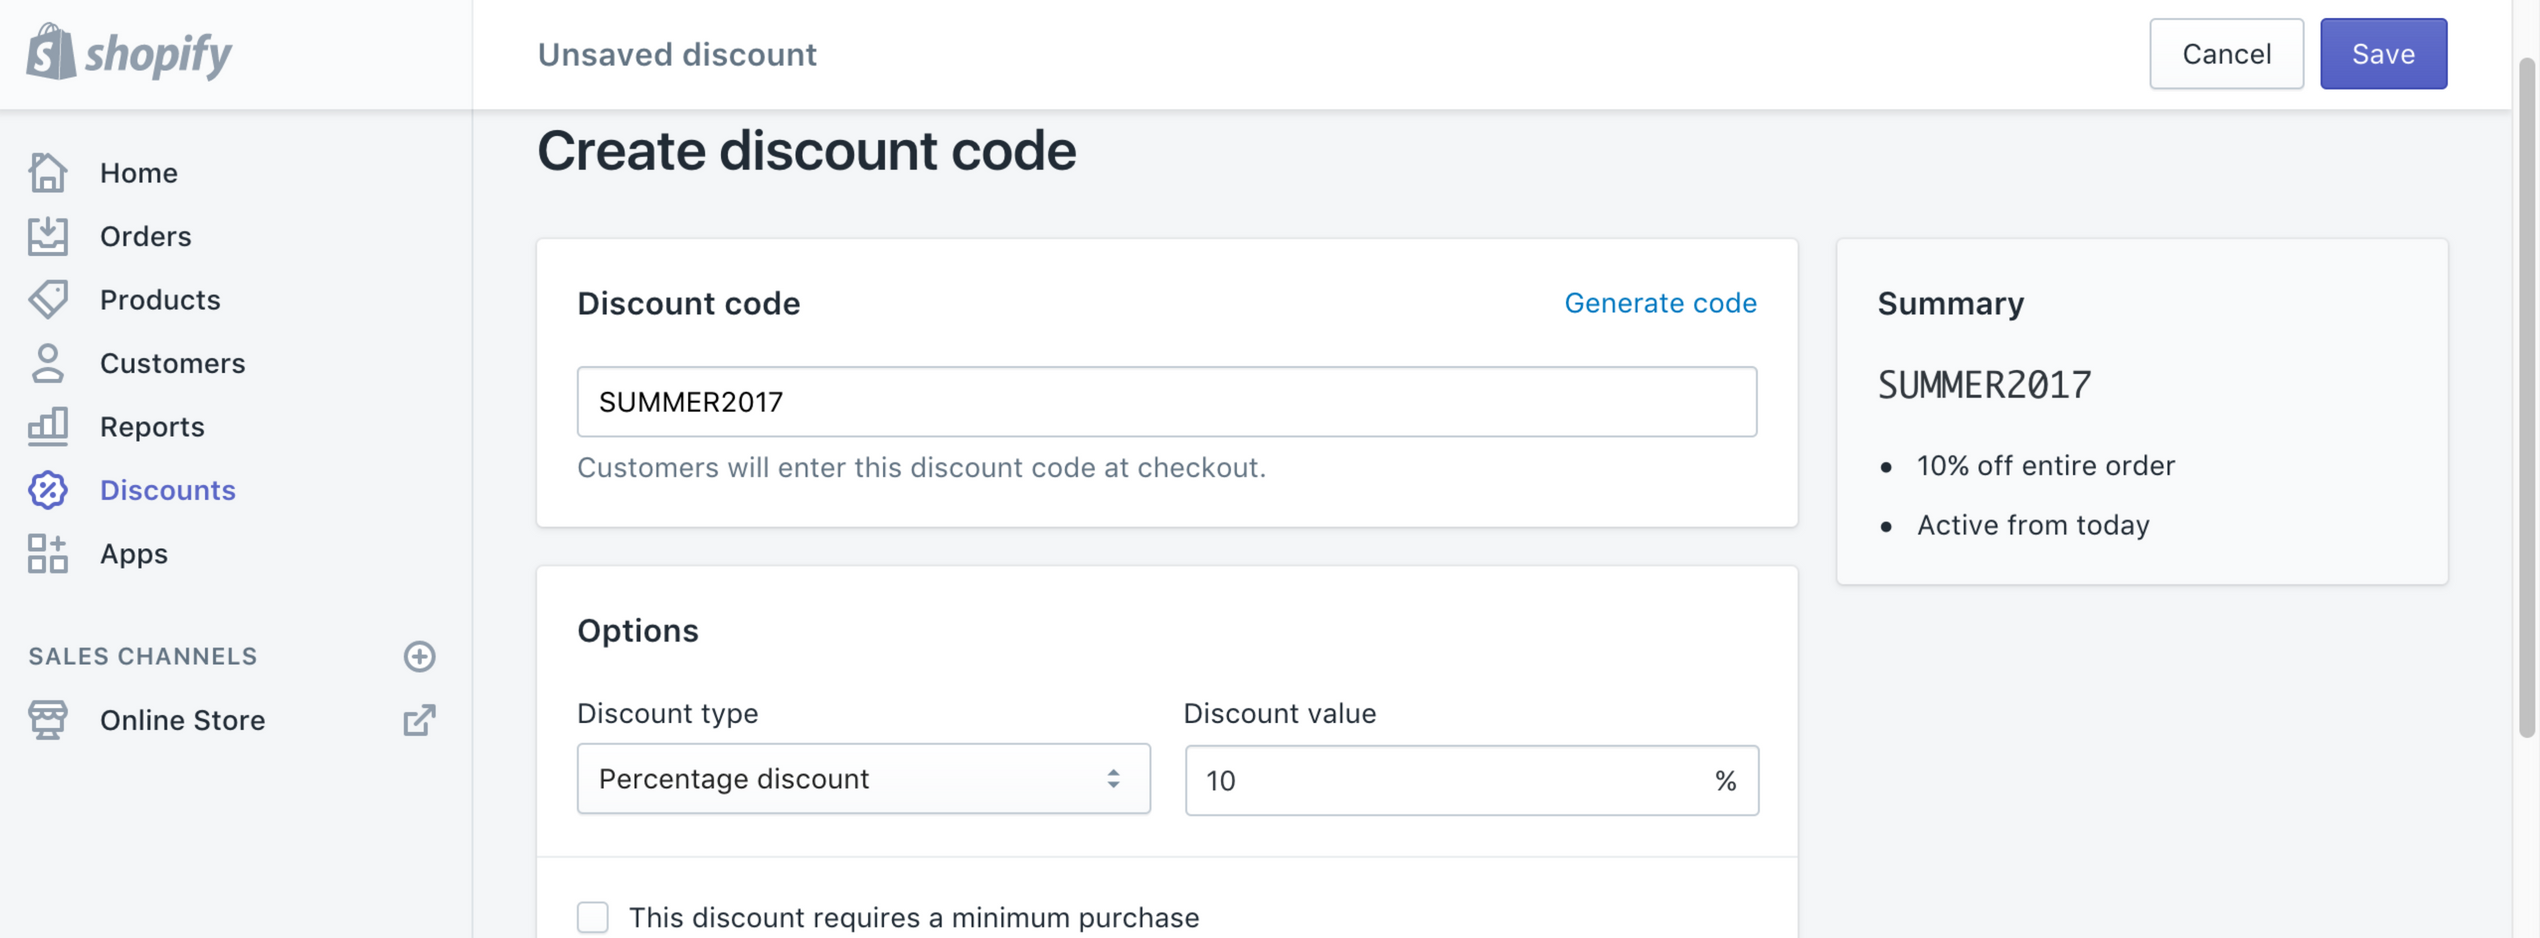 Shopify Discount Code Screenshot